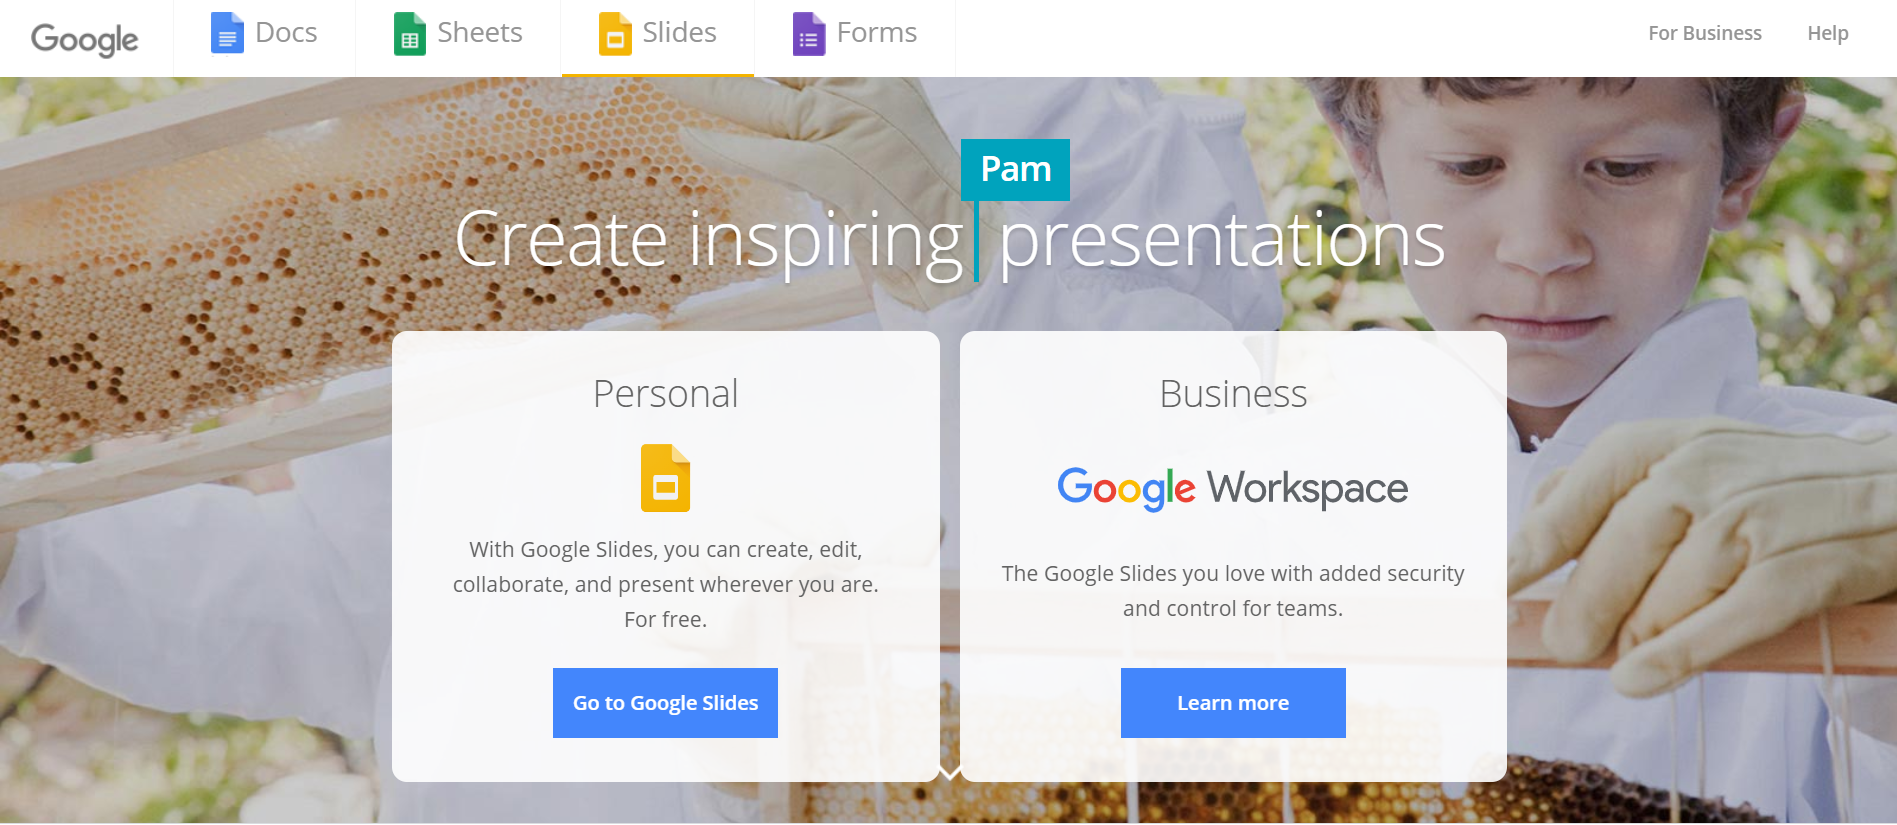 What is Google Slides what it is used for